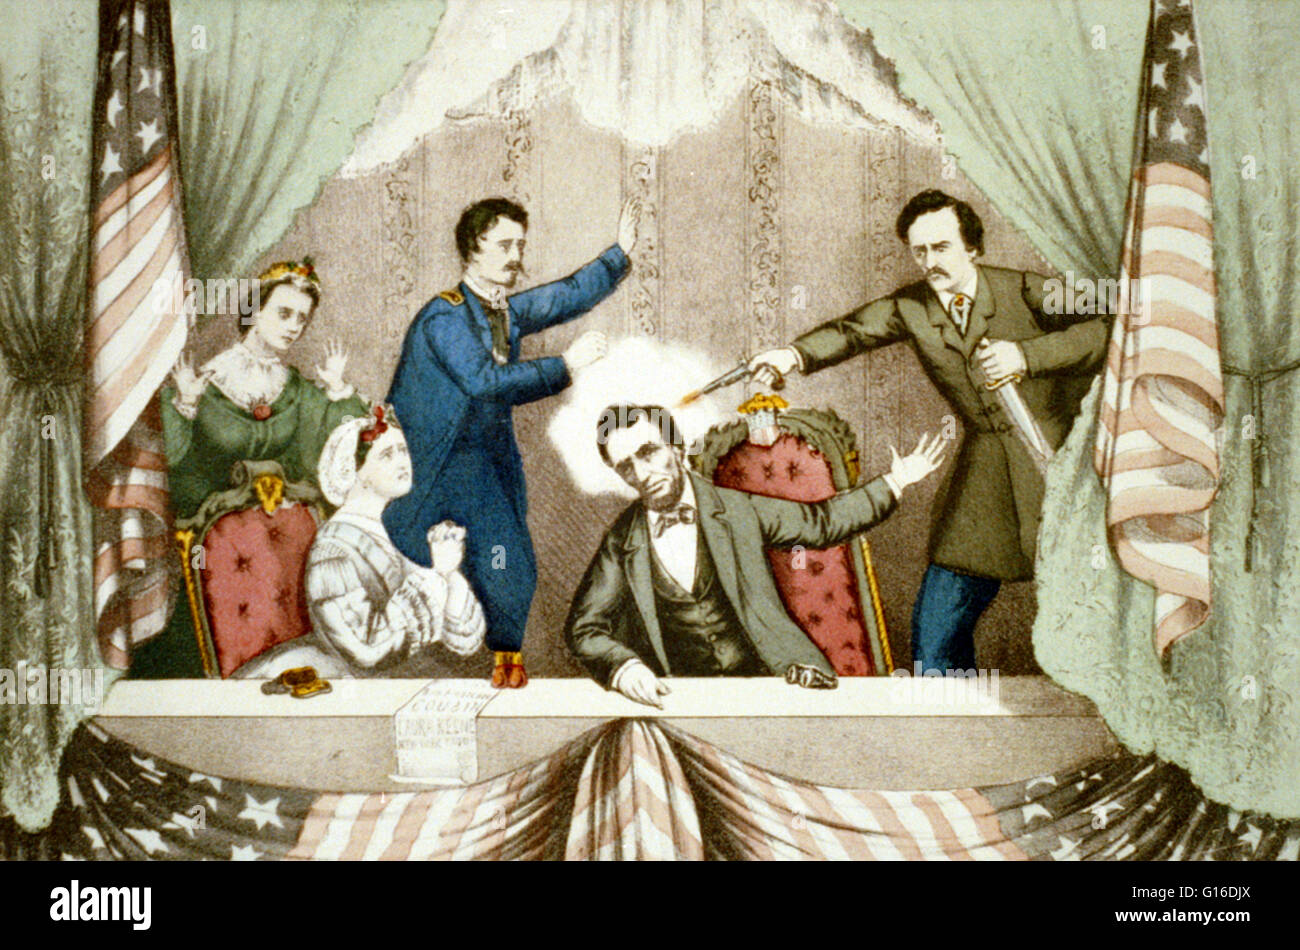 Assassination of President Lincoln: at Ford's Theatre, Washington, D.C., April 14th, 1865. Print shows the president's Stock Photo